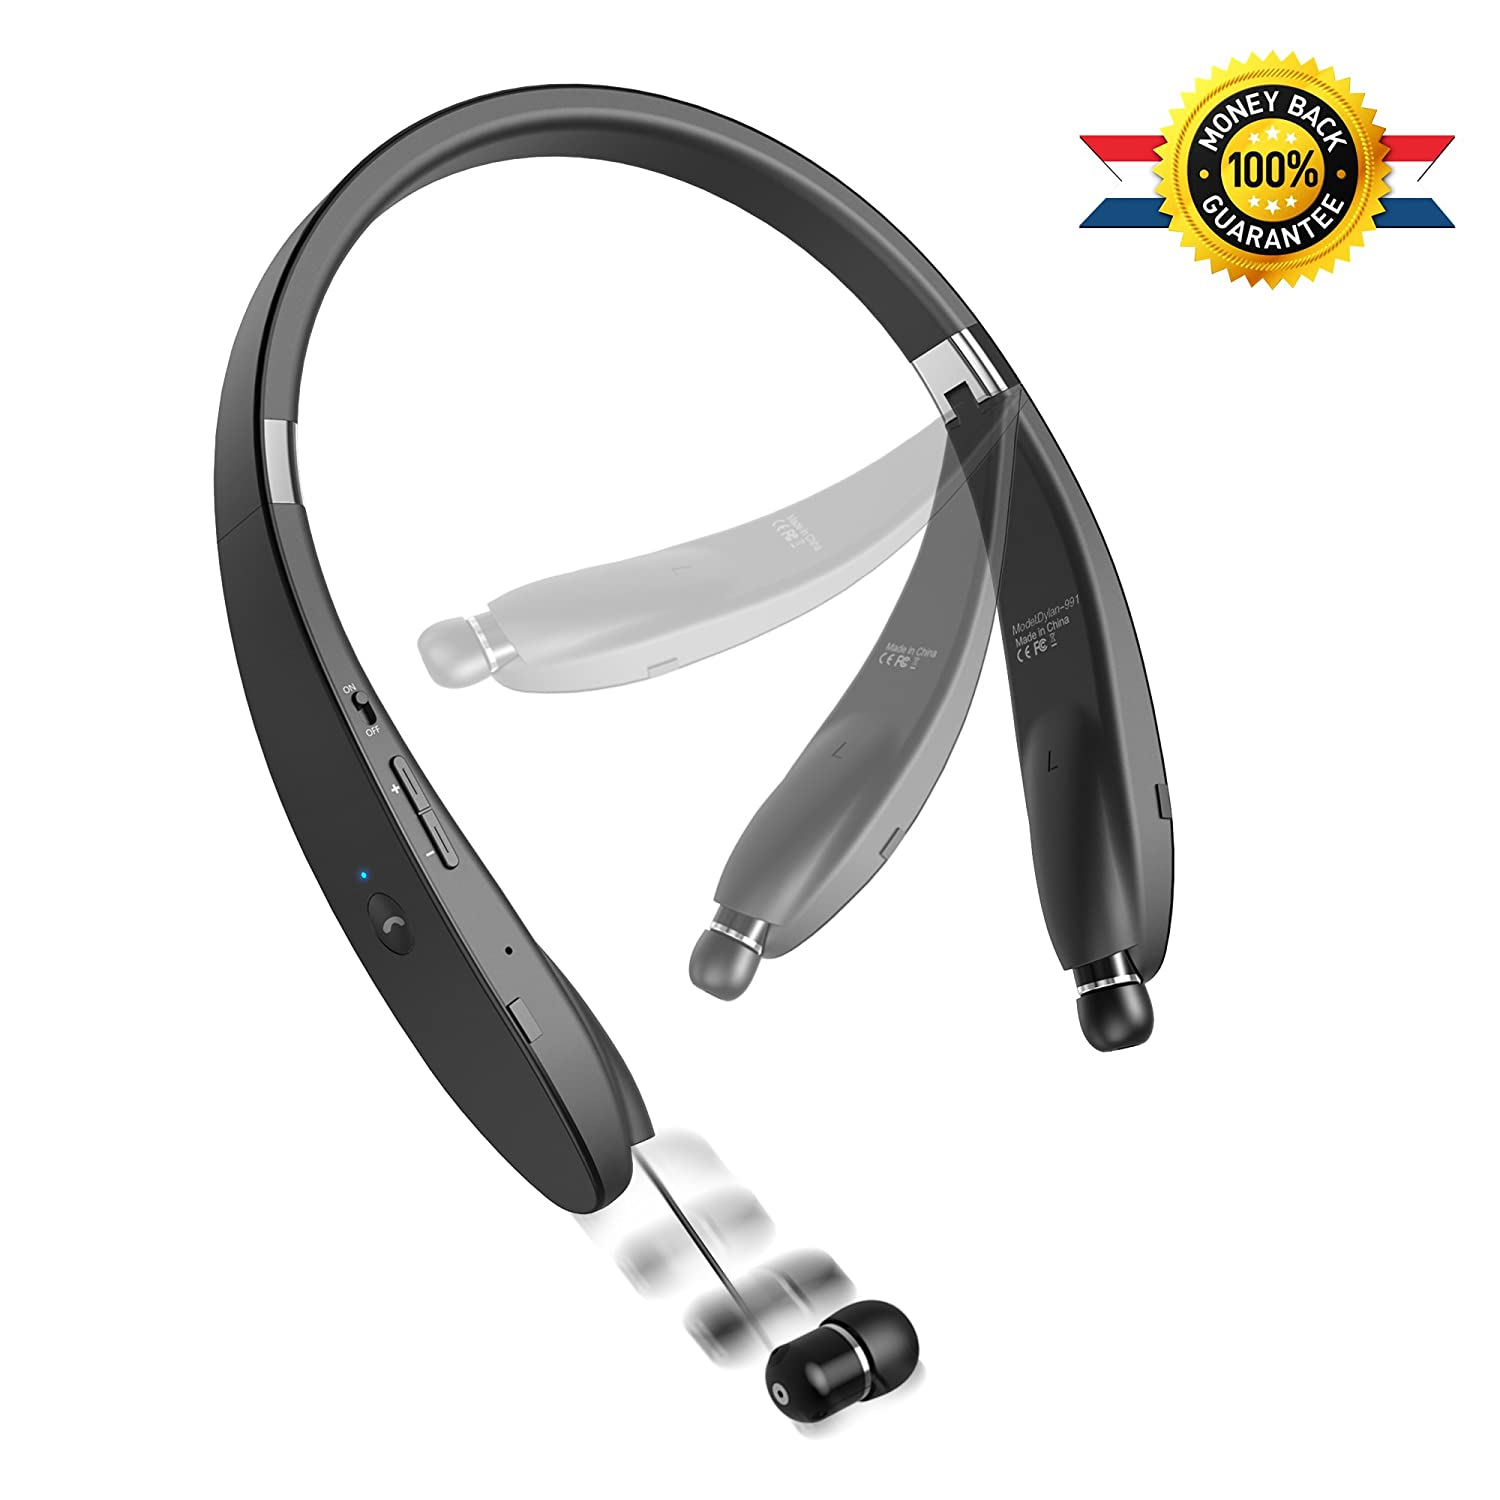 bluetooth headphones. amazon.com: bluetooth headset headphone wireless neckband design with retractable earbud for iphone, android, other enabled devices: headphones a